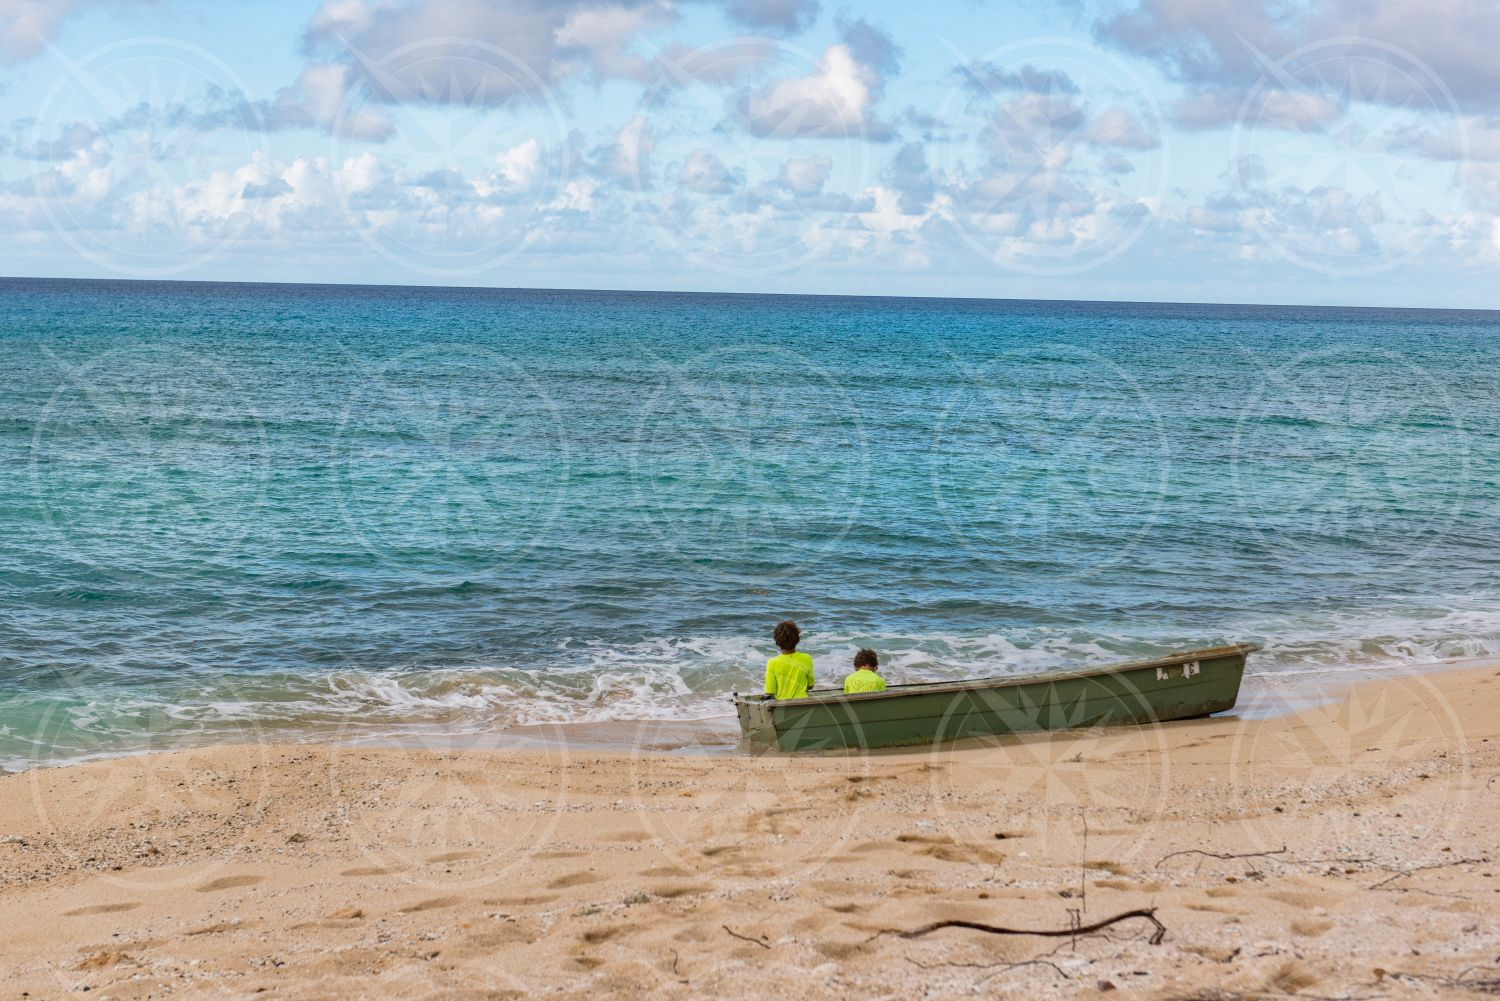 Young boys in a boat on a beach